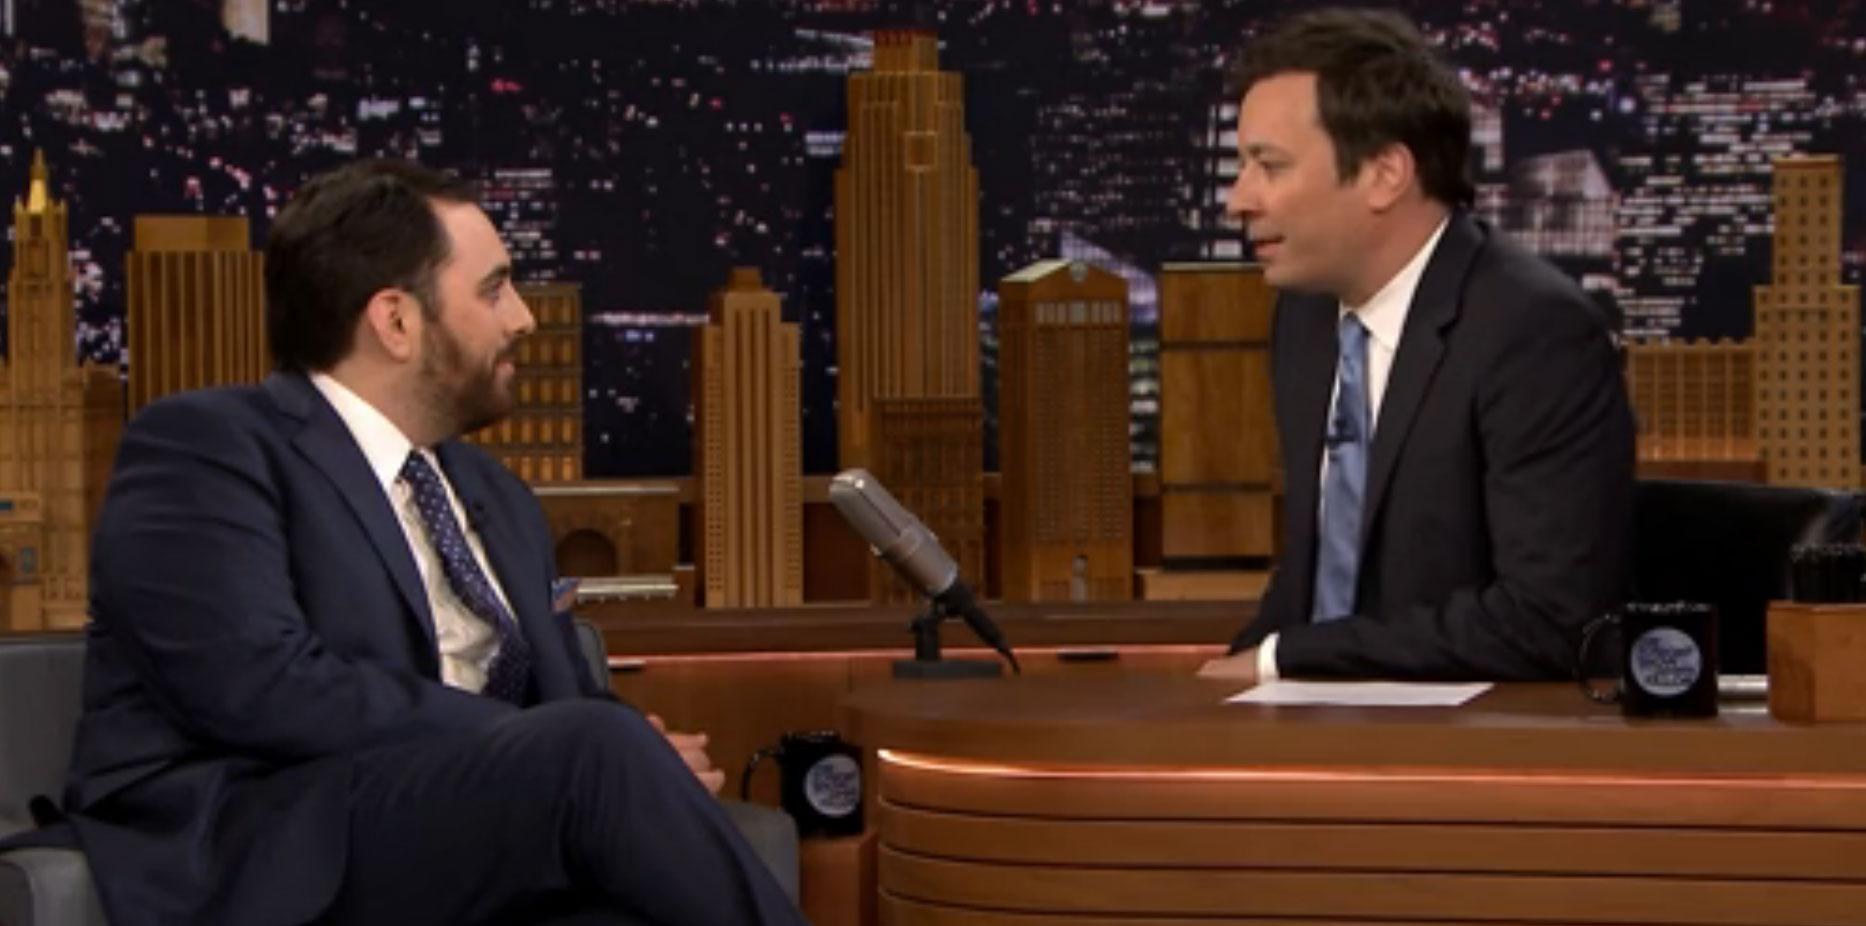 S town host brian reed visits jimmy fallon